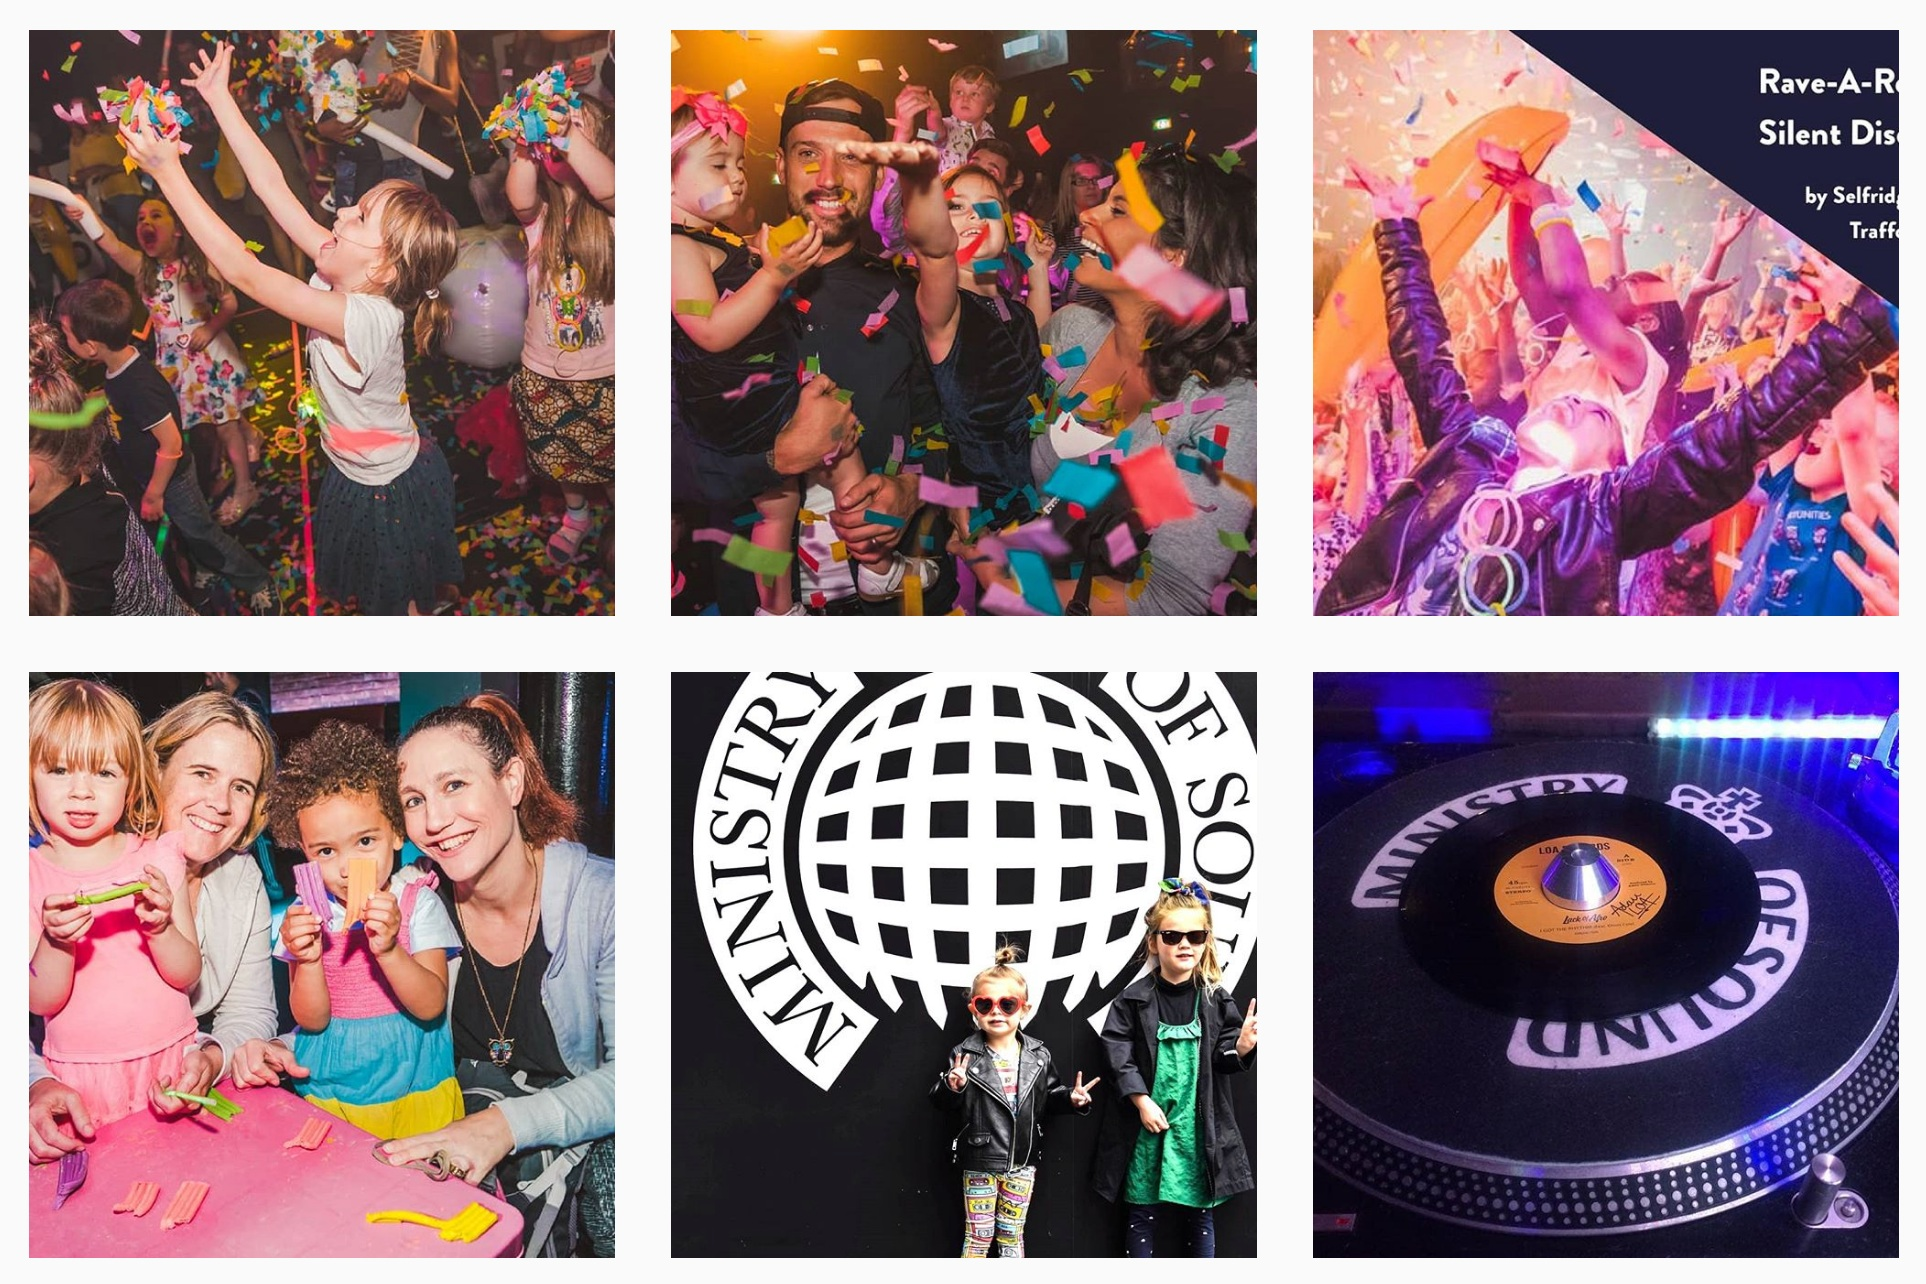 Rave-A-Roo's    Instagram has a clear visual identity relying on colourful images of children engaging in their shows that is instantly recognisable